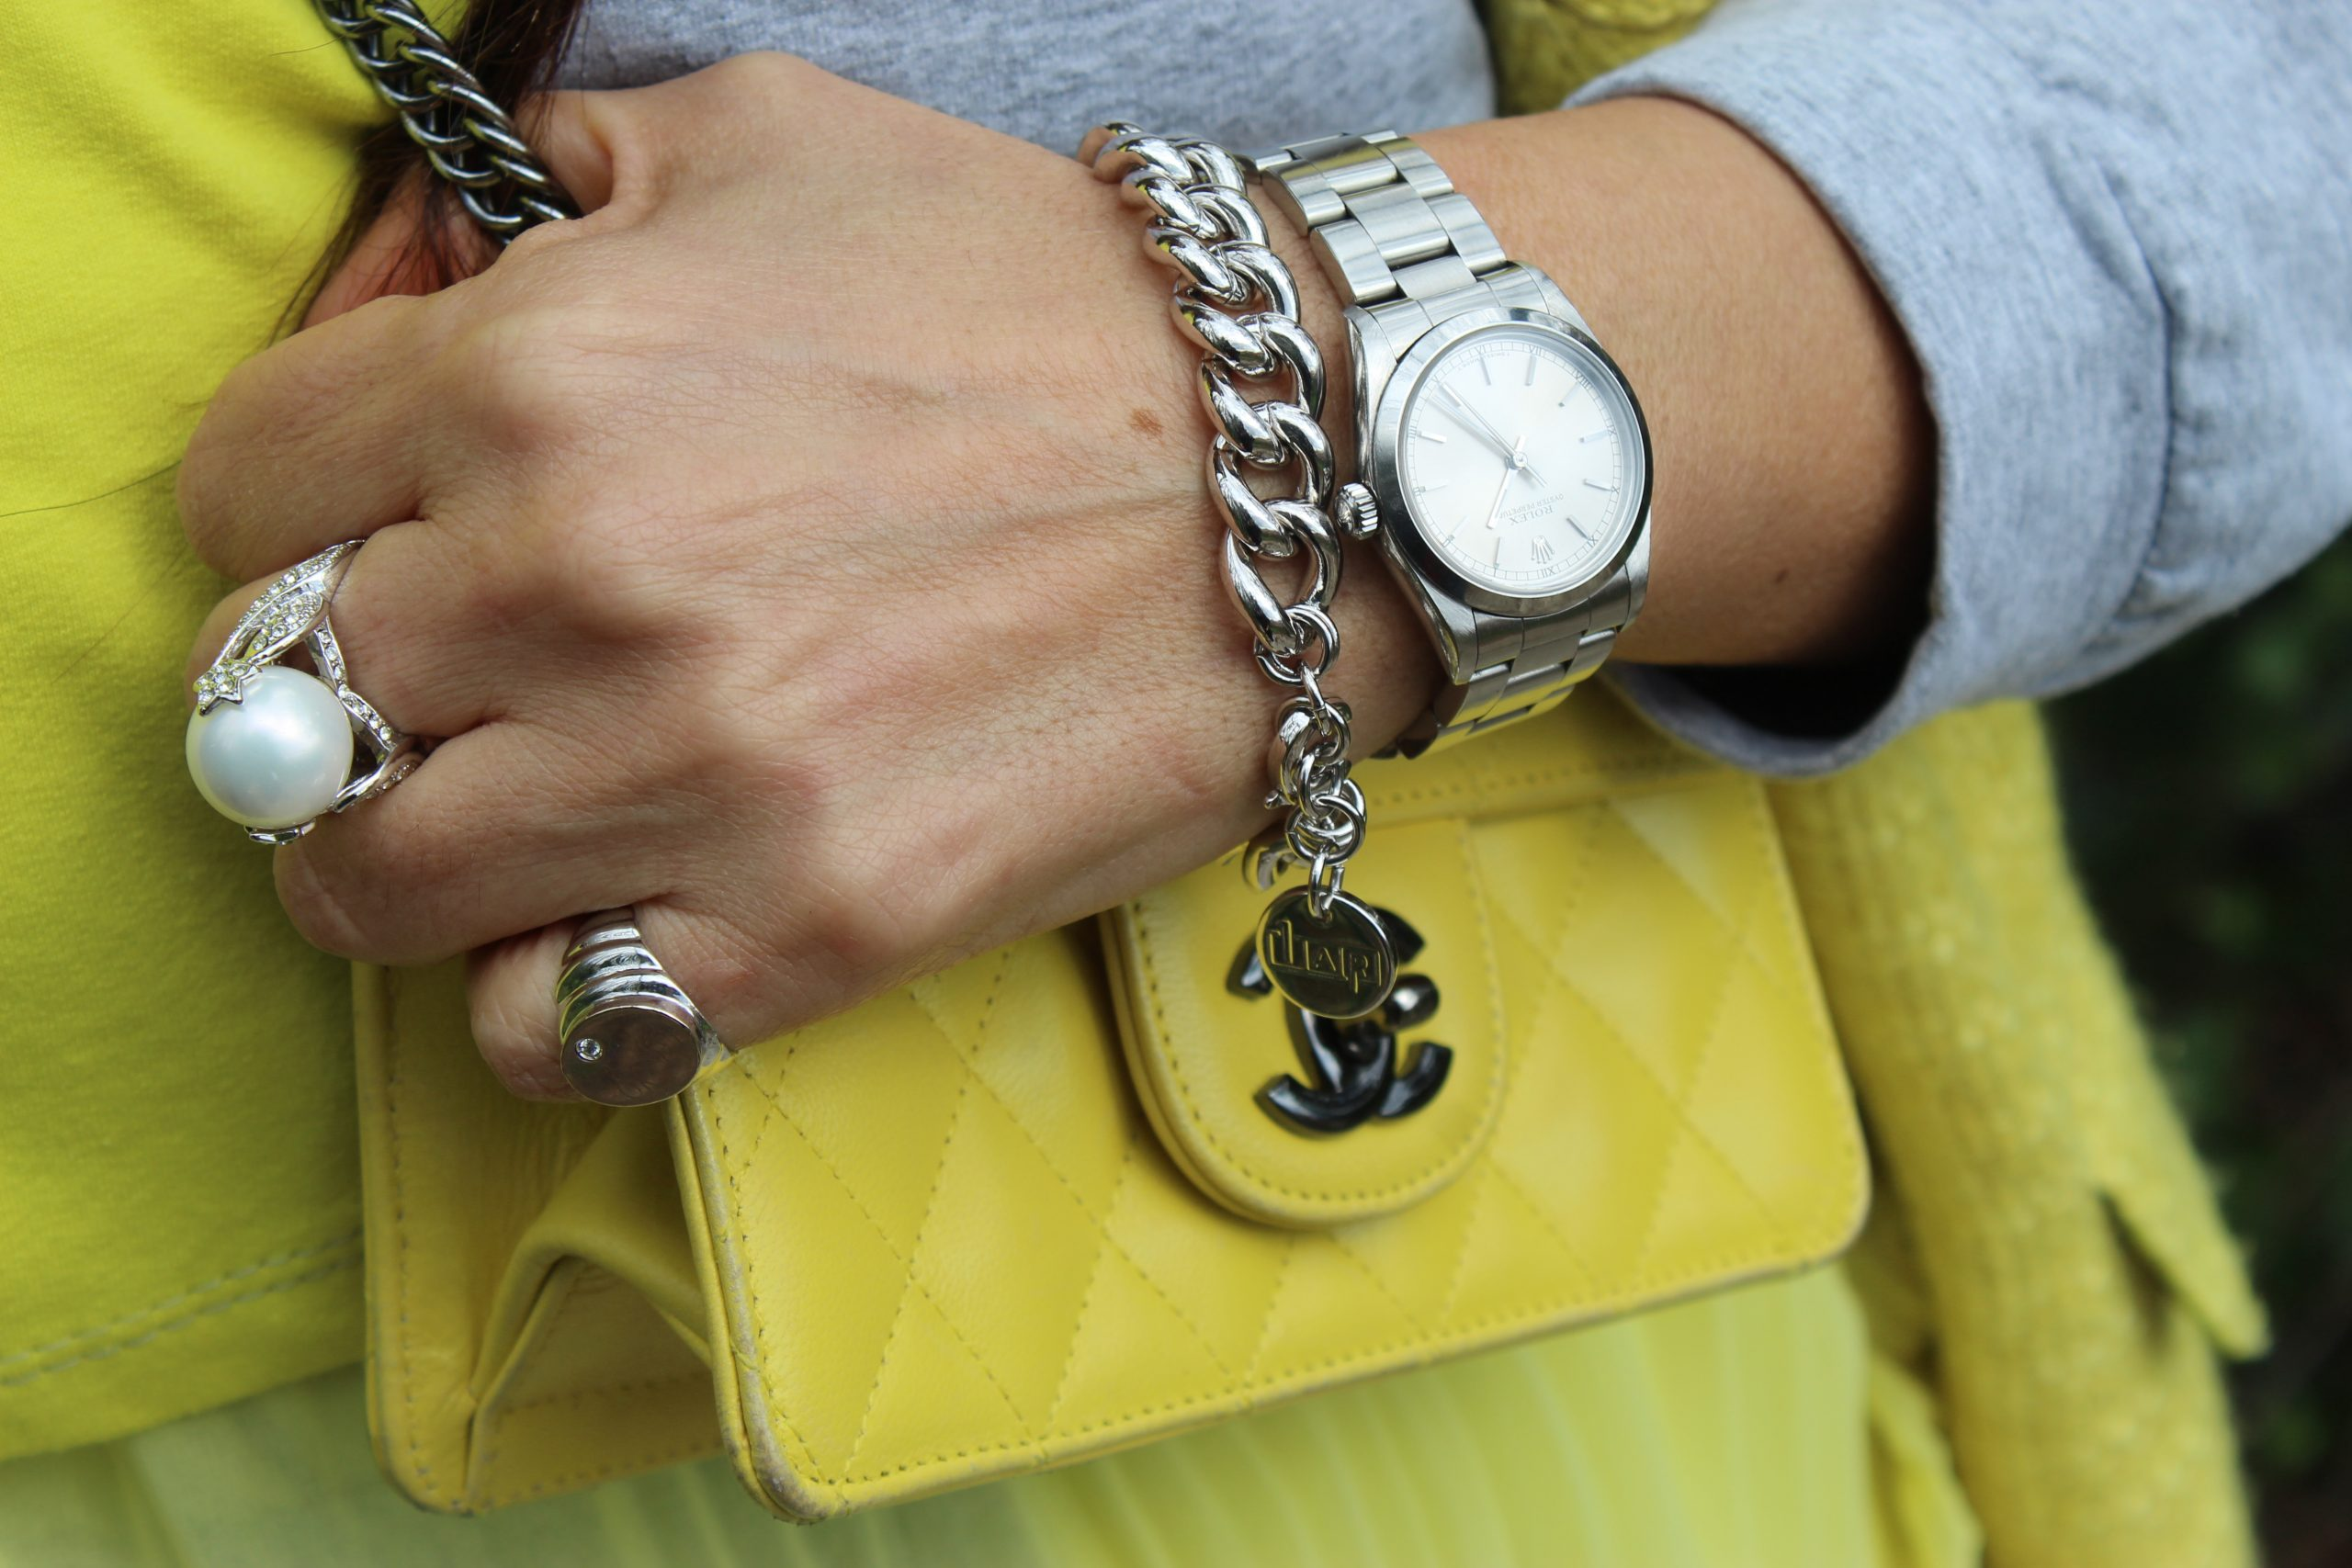 Illuminating Ultimate Gray Pantone Year Color Trend Chanel Accessories Paola Lauretano